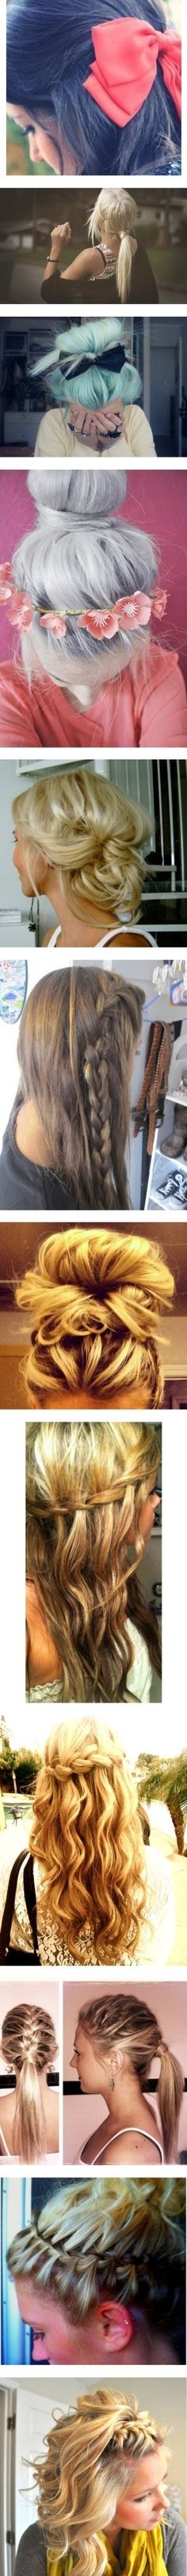 pretty and easy hairstyles - Click image to find more Hair & Beauty Pinterest pins -Perfect for moms who don't have time to do their own hair in the mornings